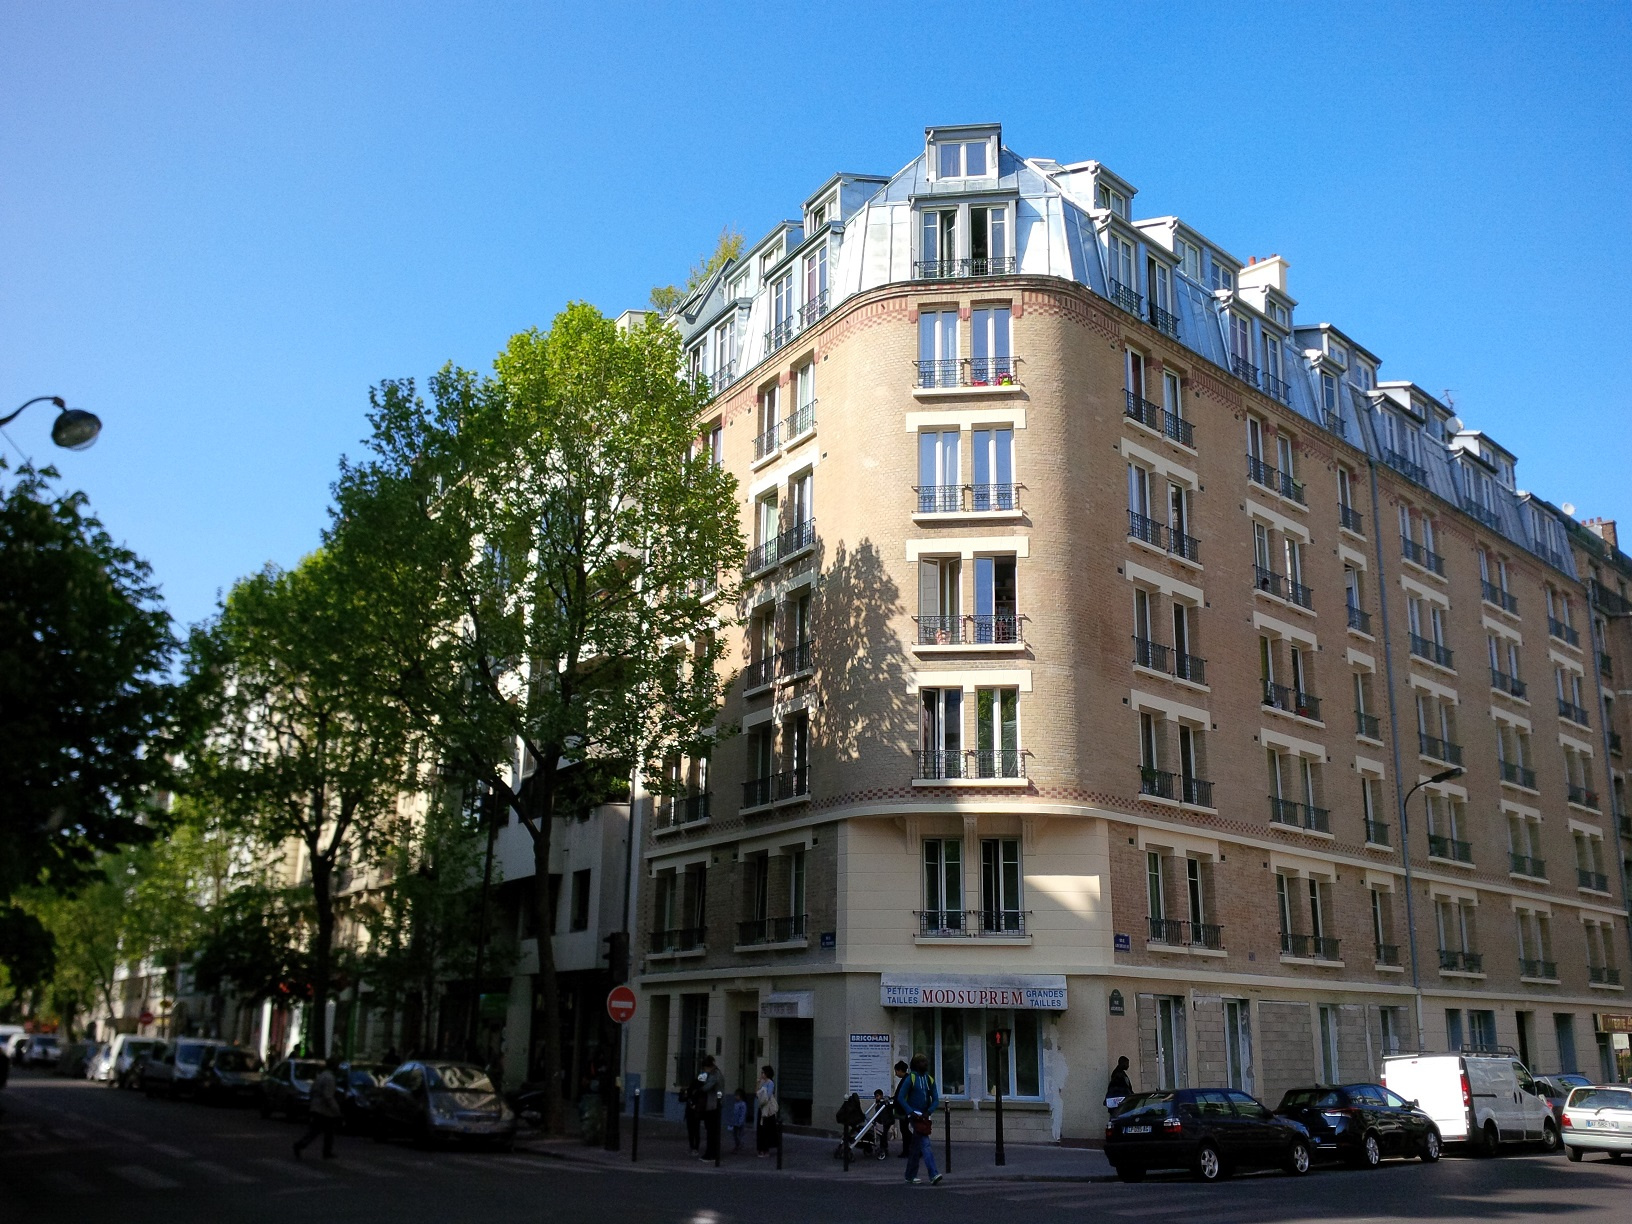 1 PIECE 27M2 PARIS 19E RUE ARCHEREAU